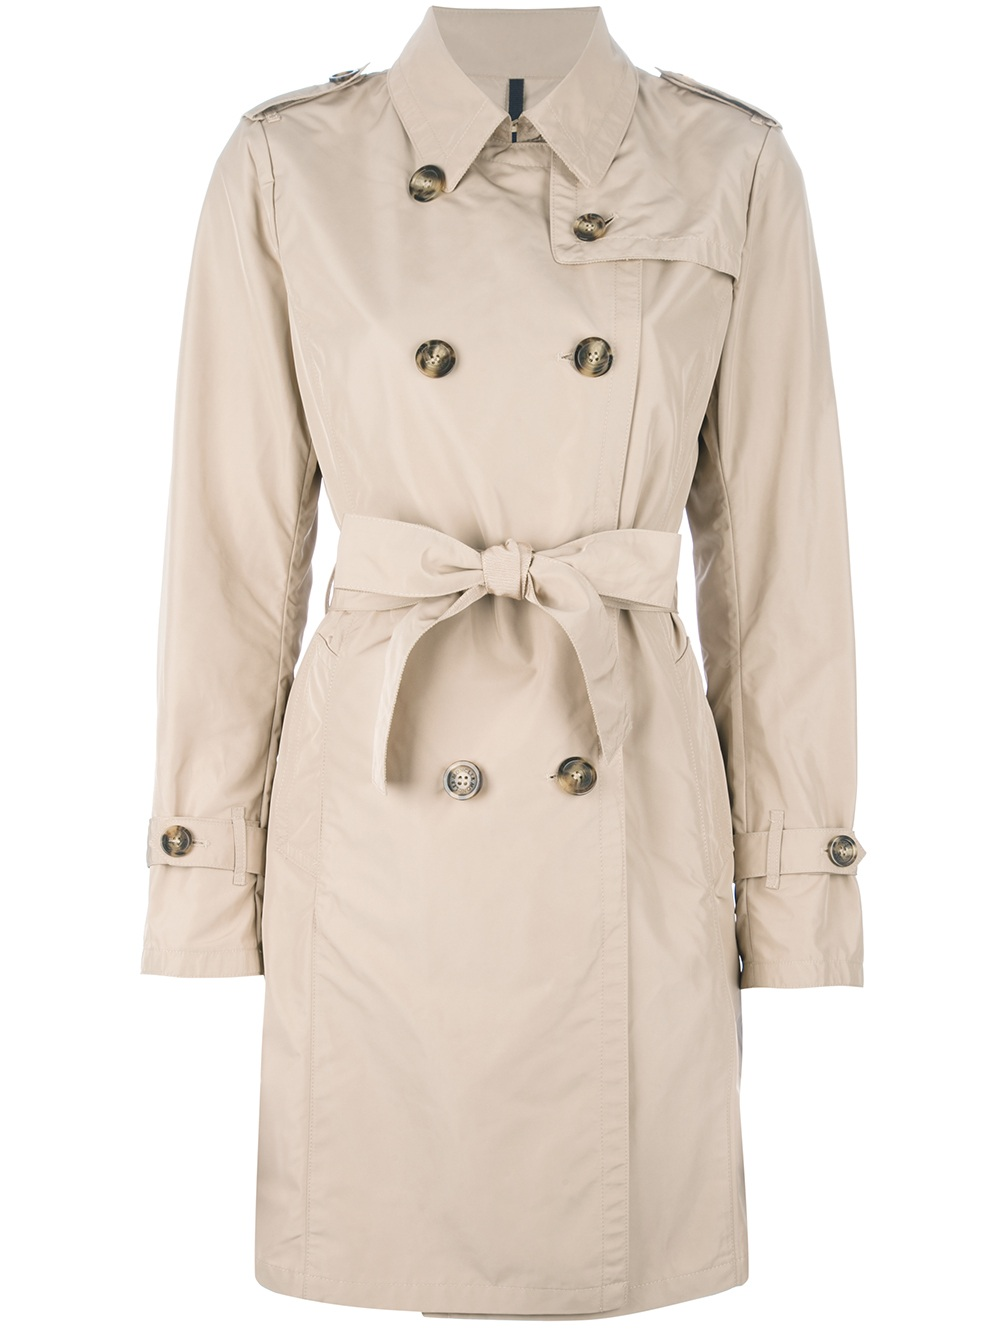 Free shipping BOTH ways on Coats & Outerwear, Beige, Women, from our vast selection of styles. Fast delivery, and 24/7/ real-person service with a smile. Click or call